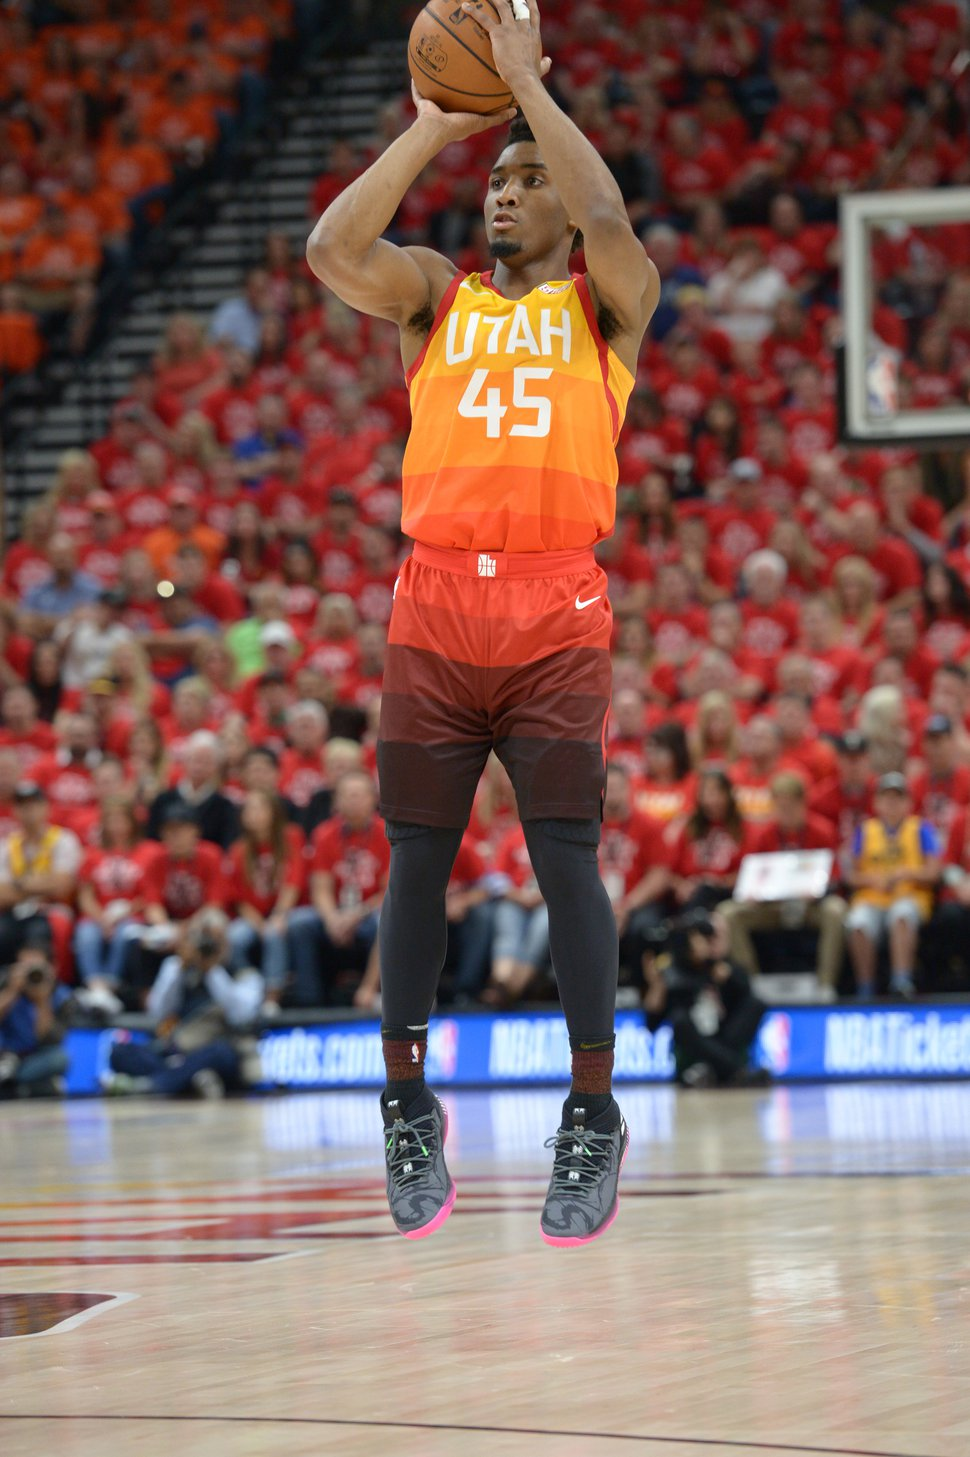 (Leah Hogsten | The Salt Lake Tribune) Utah Jazz guard Donovan Mitchell (45) was held to 2 points in the first half as the Utah Jazz take on the Houston Rockets in Game 3 of an NBA basketball second-round playoff series Friday, May 4, 2018 in Salt Lake City.